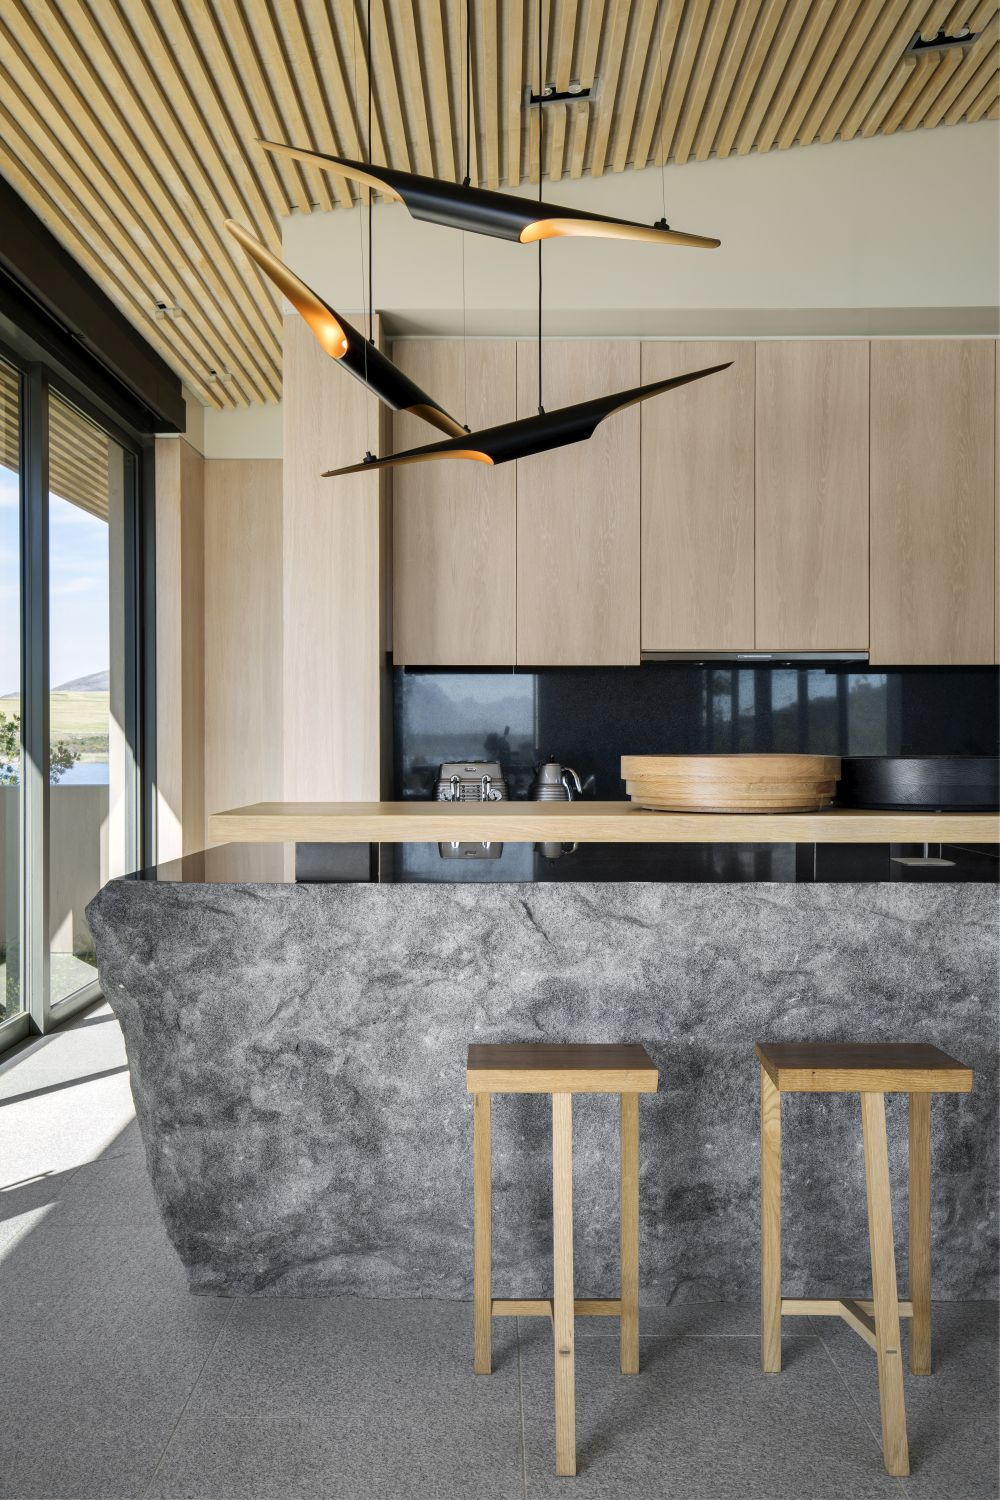 The sculptural hanging lights complement the kitchen's decor and furnishings in a very chic way